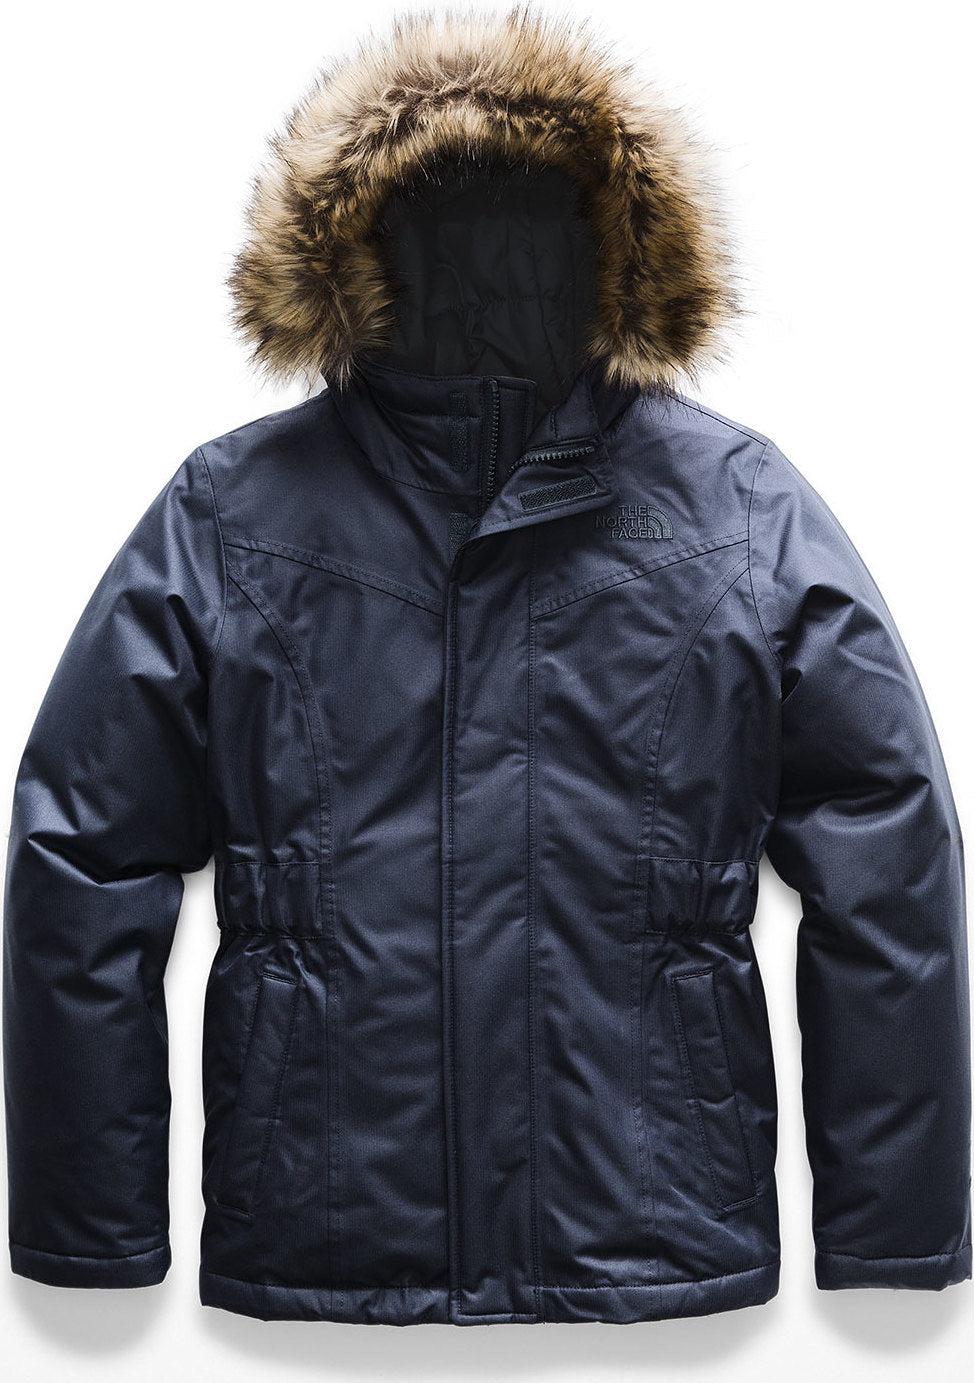 90859e5e88 The North Face Girl s Greenland Down Parka